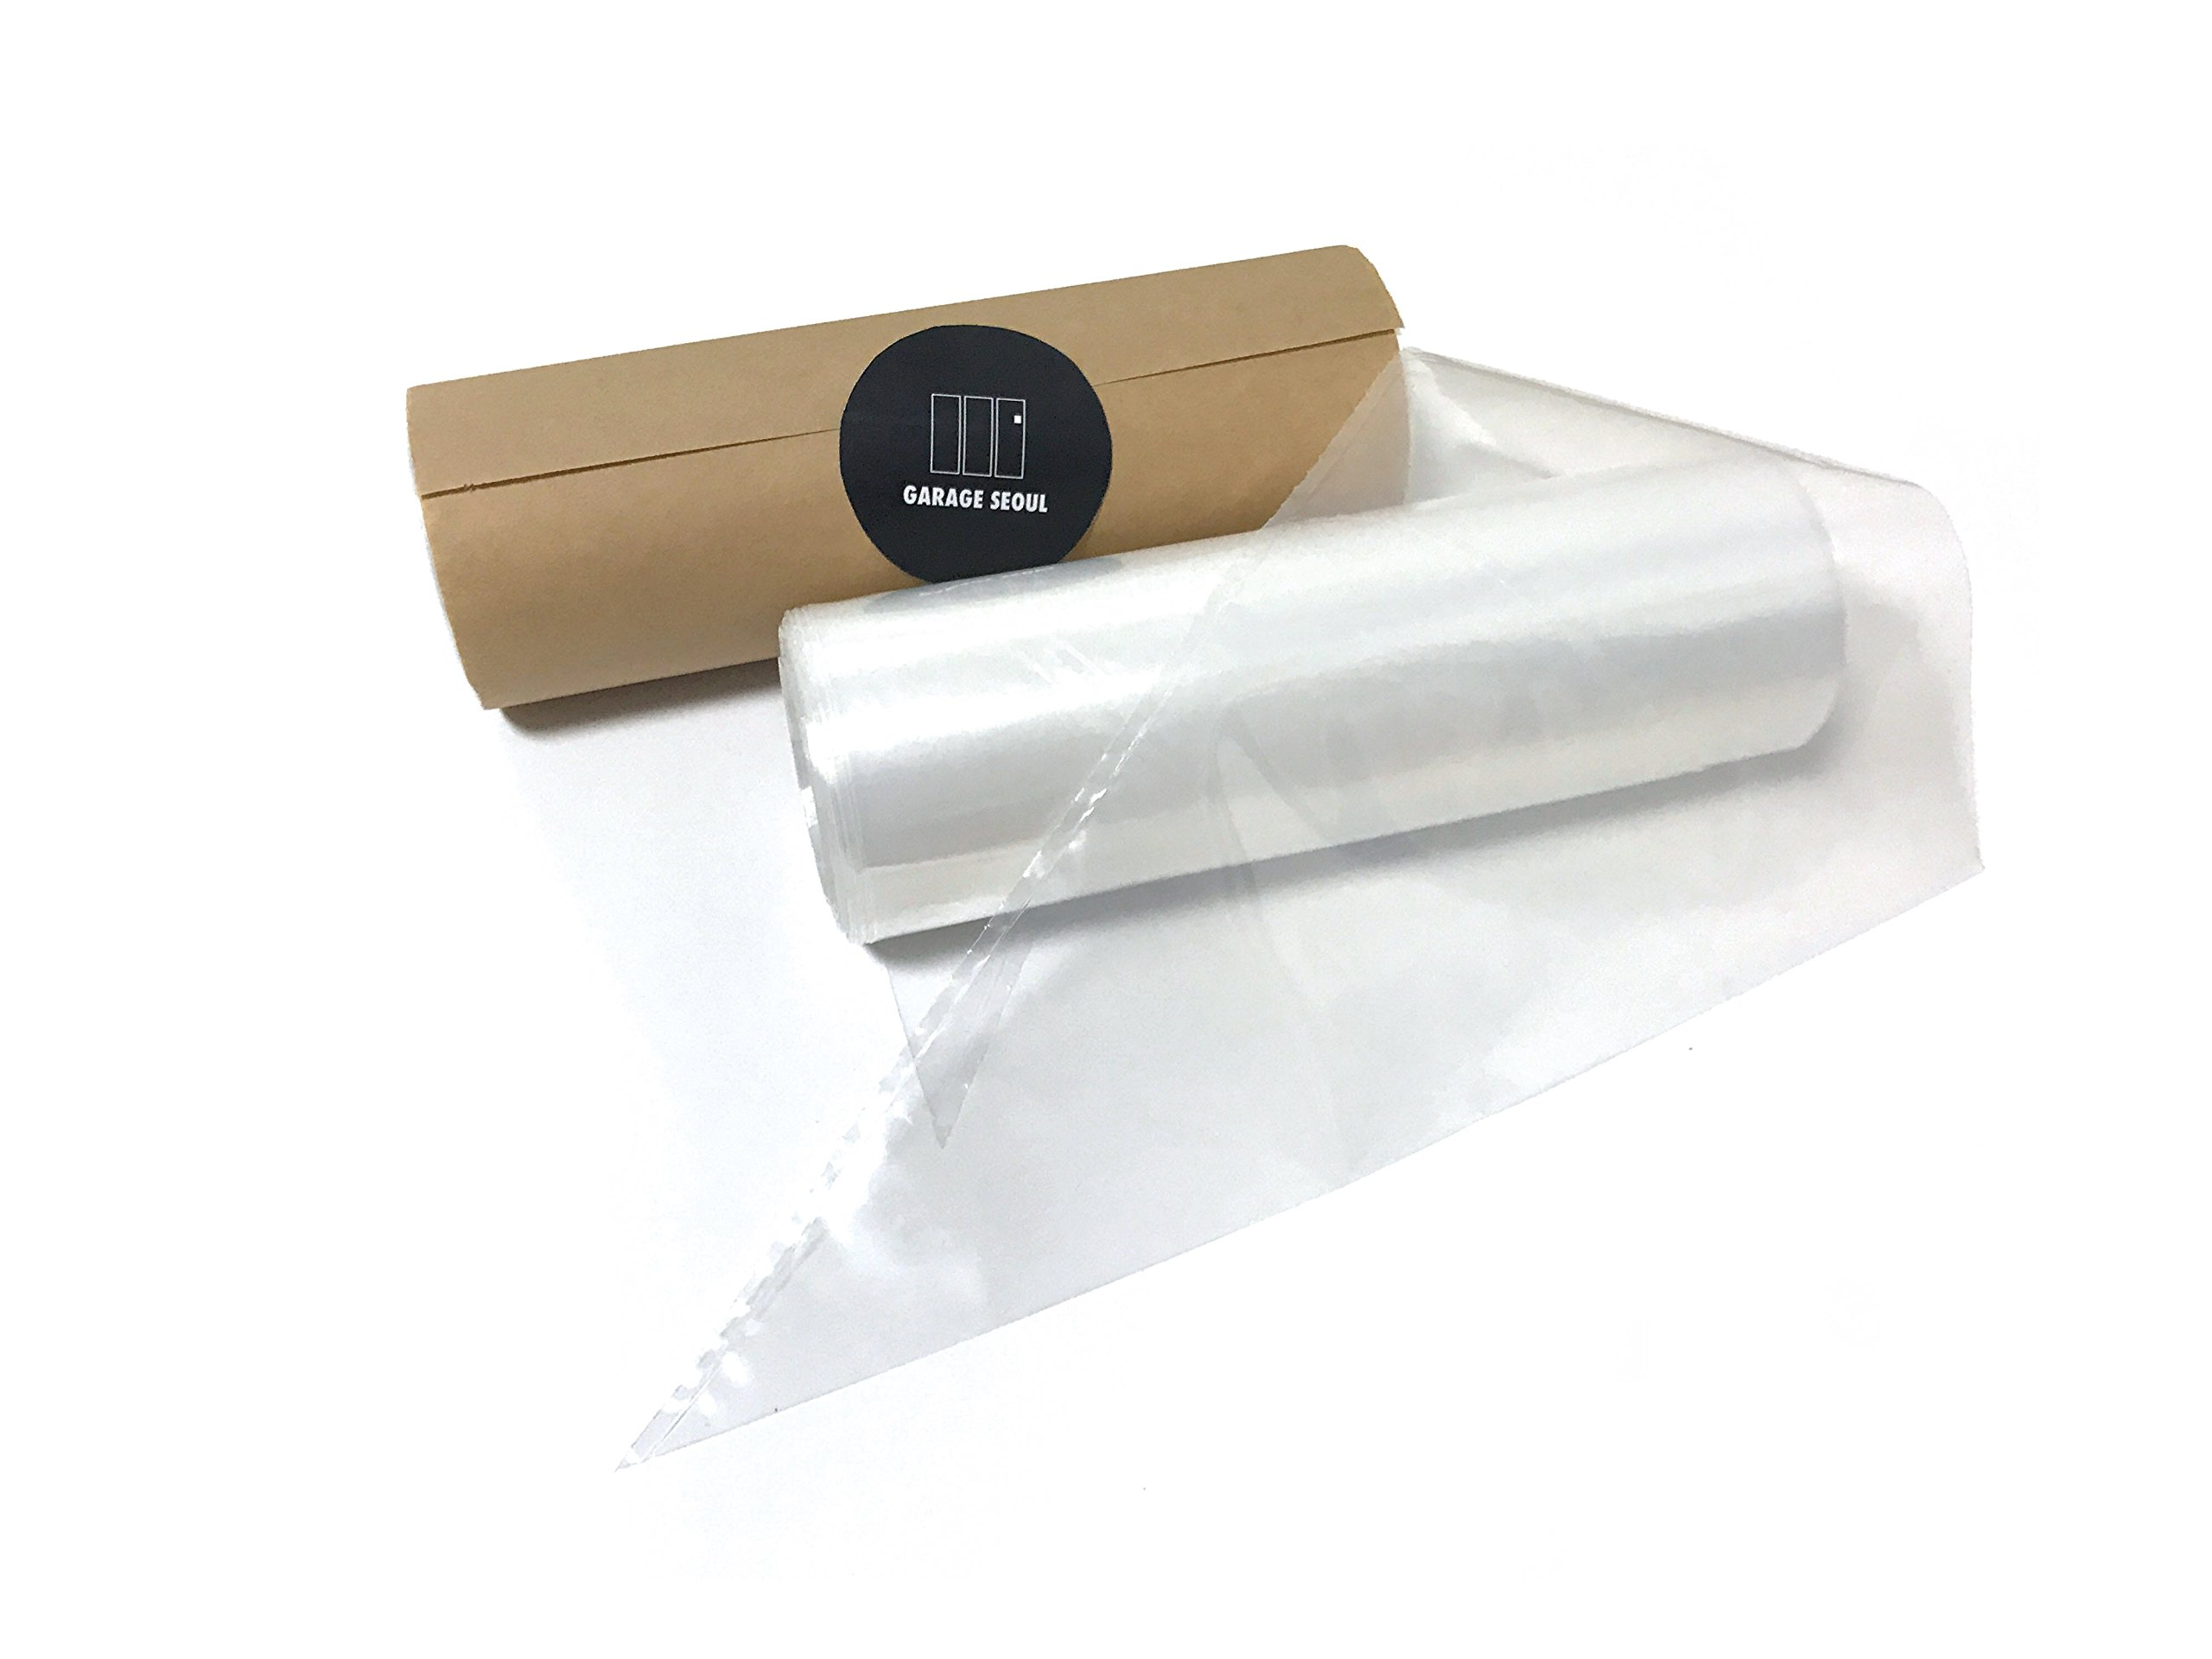 GarageSeoul Pastry Bag,Disposable Pastry Bag,Piping Bag,Icing Bag,14Inch,Roll of 100 Bags,Extra Thick,Cake/Cupcake Decorating Bag,Made in Korea (14Inch)